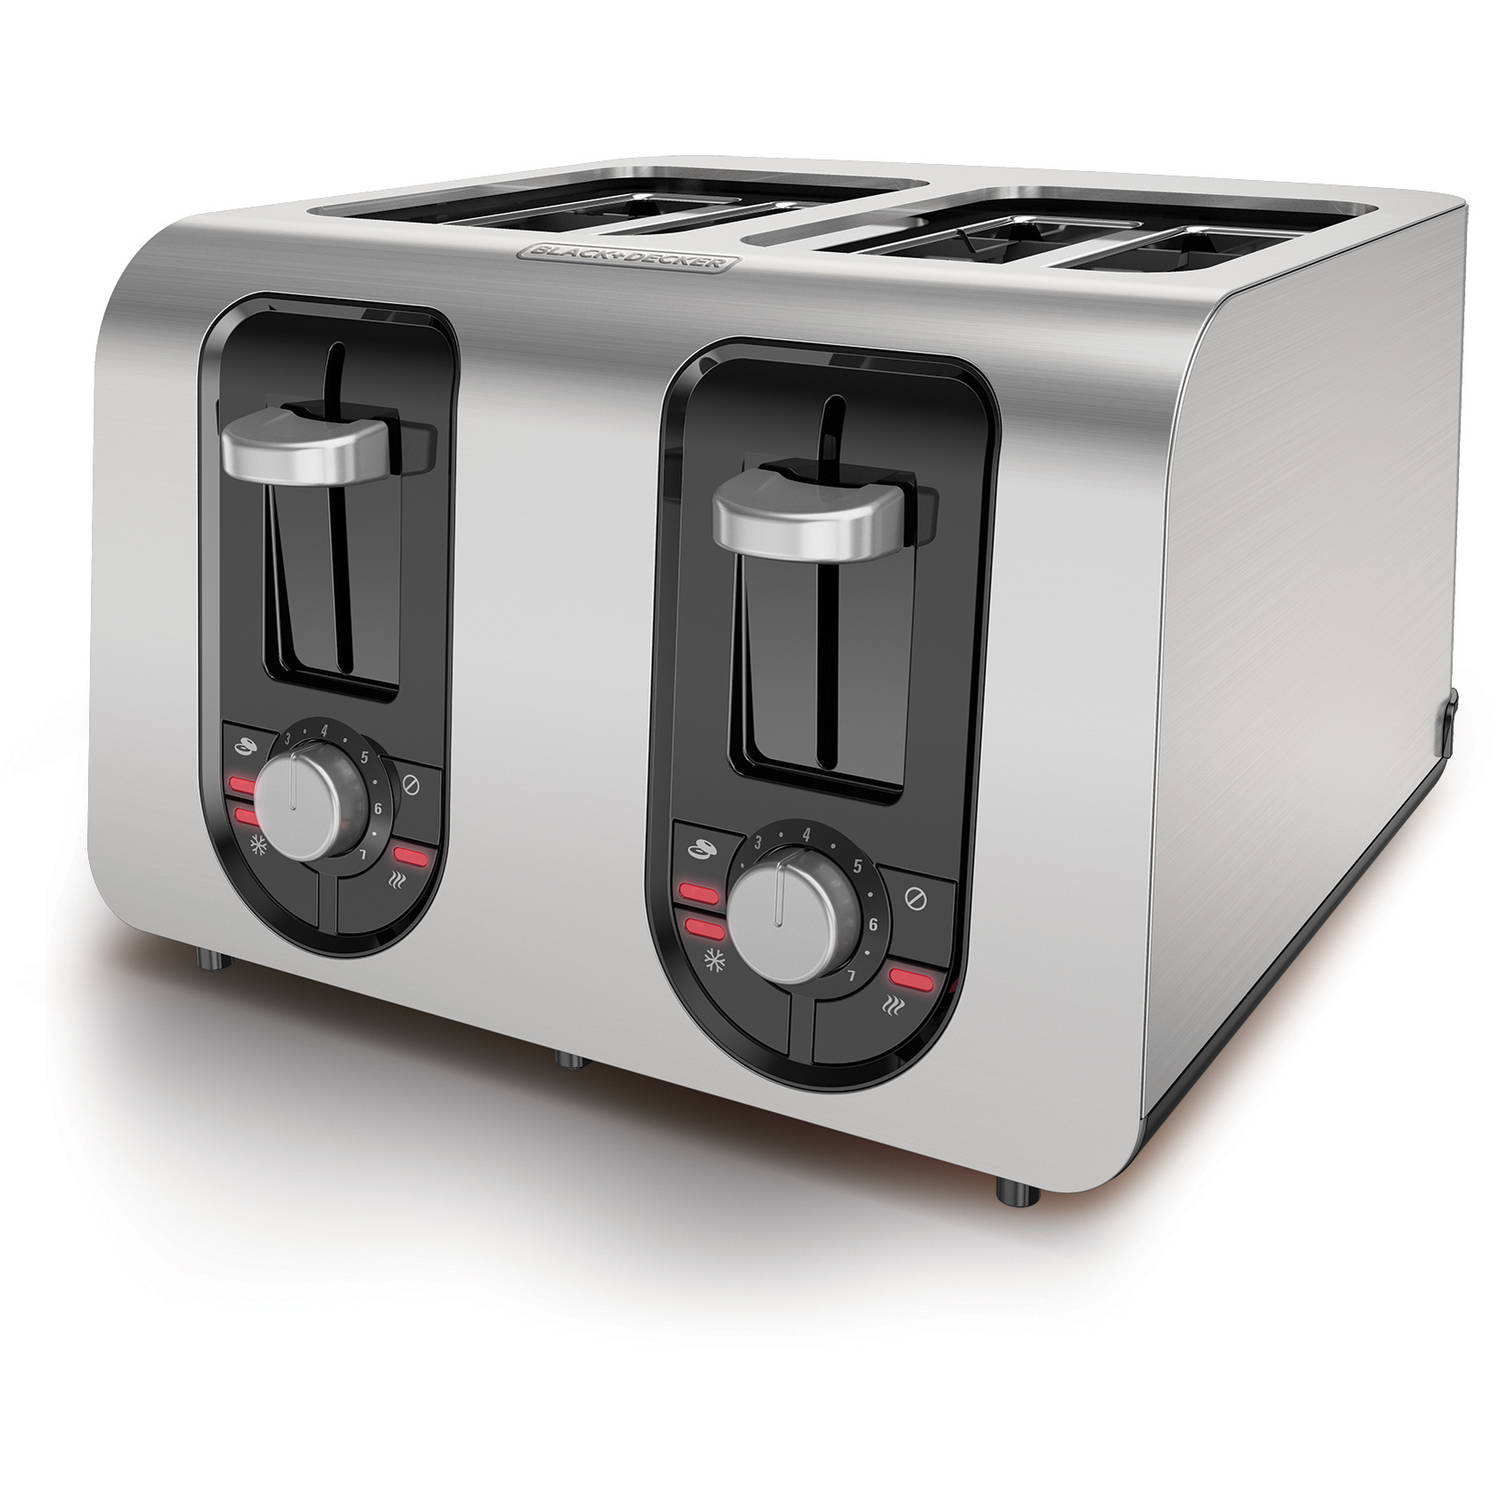 Black & Decker 4-Slice Toaster